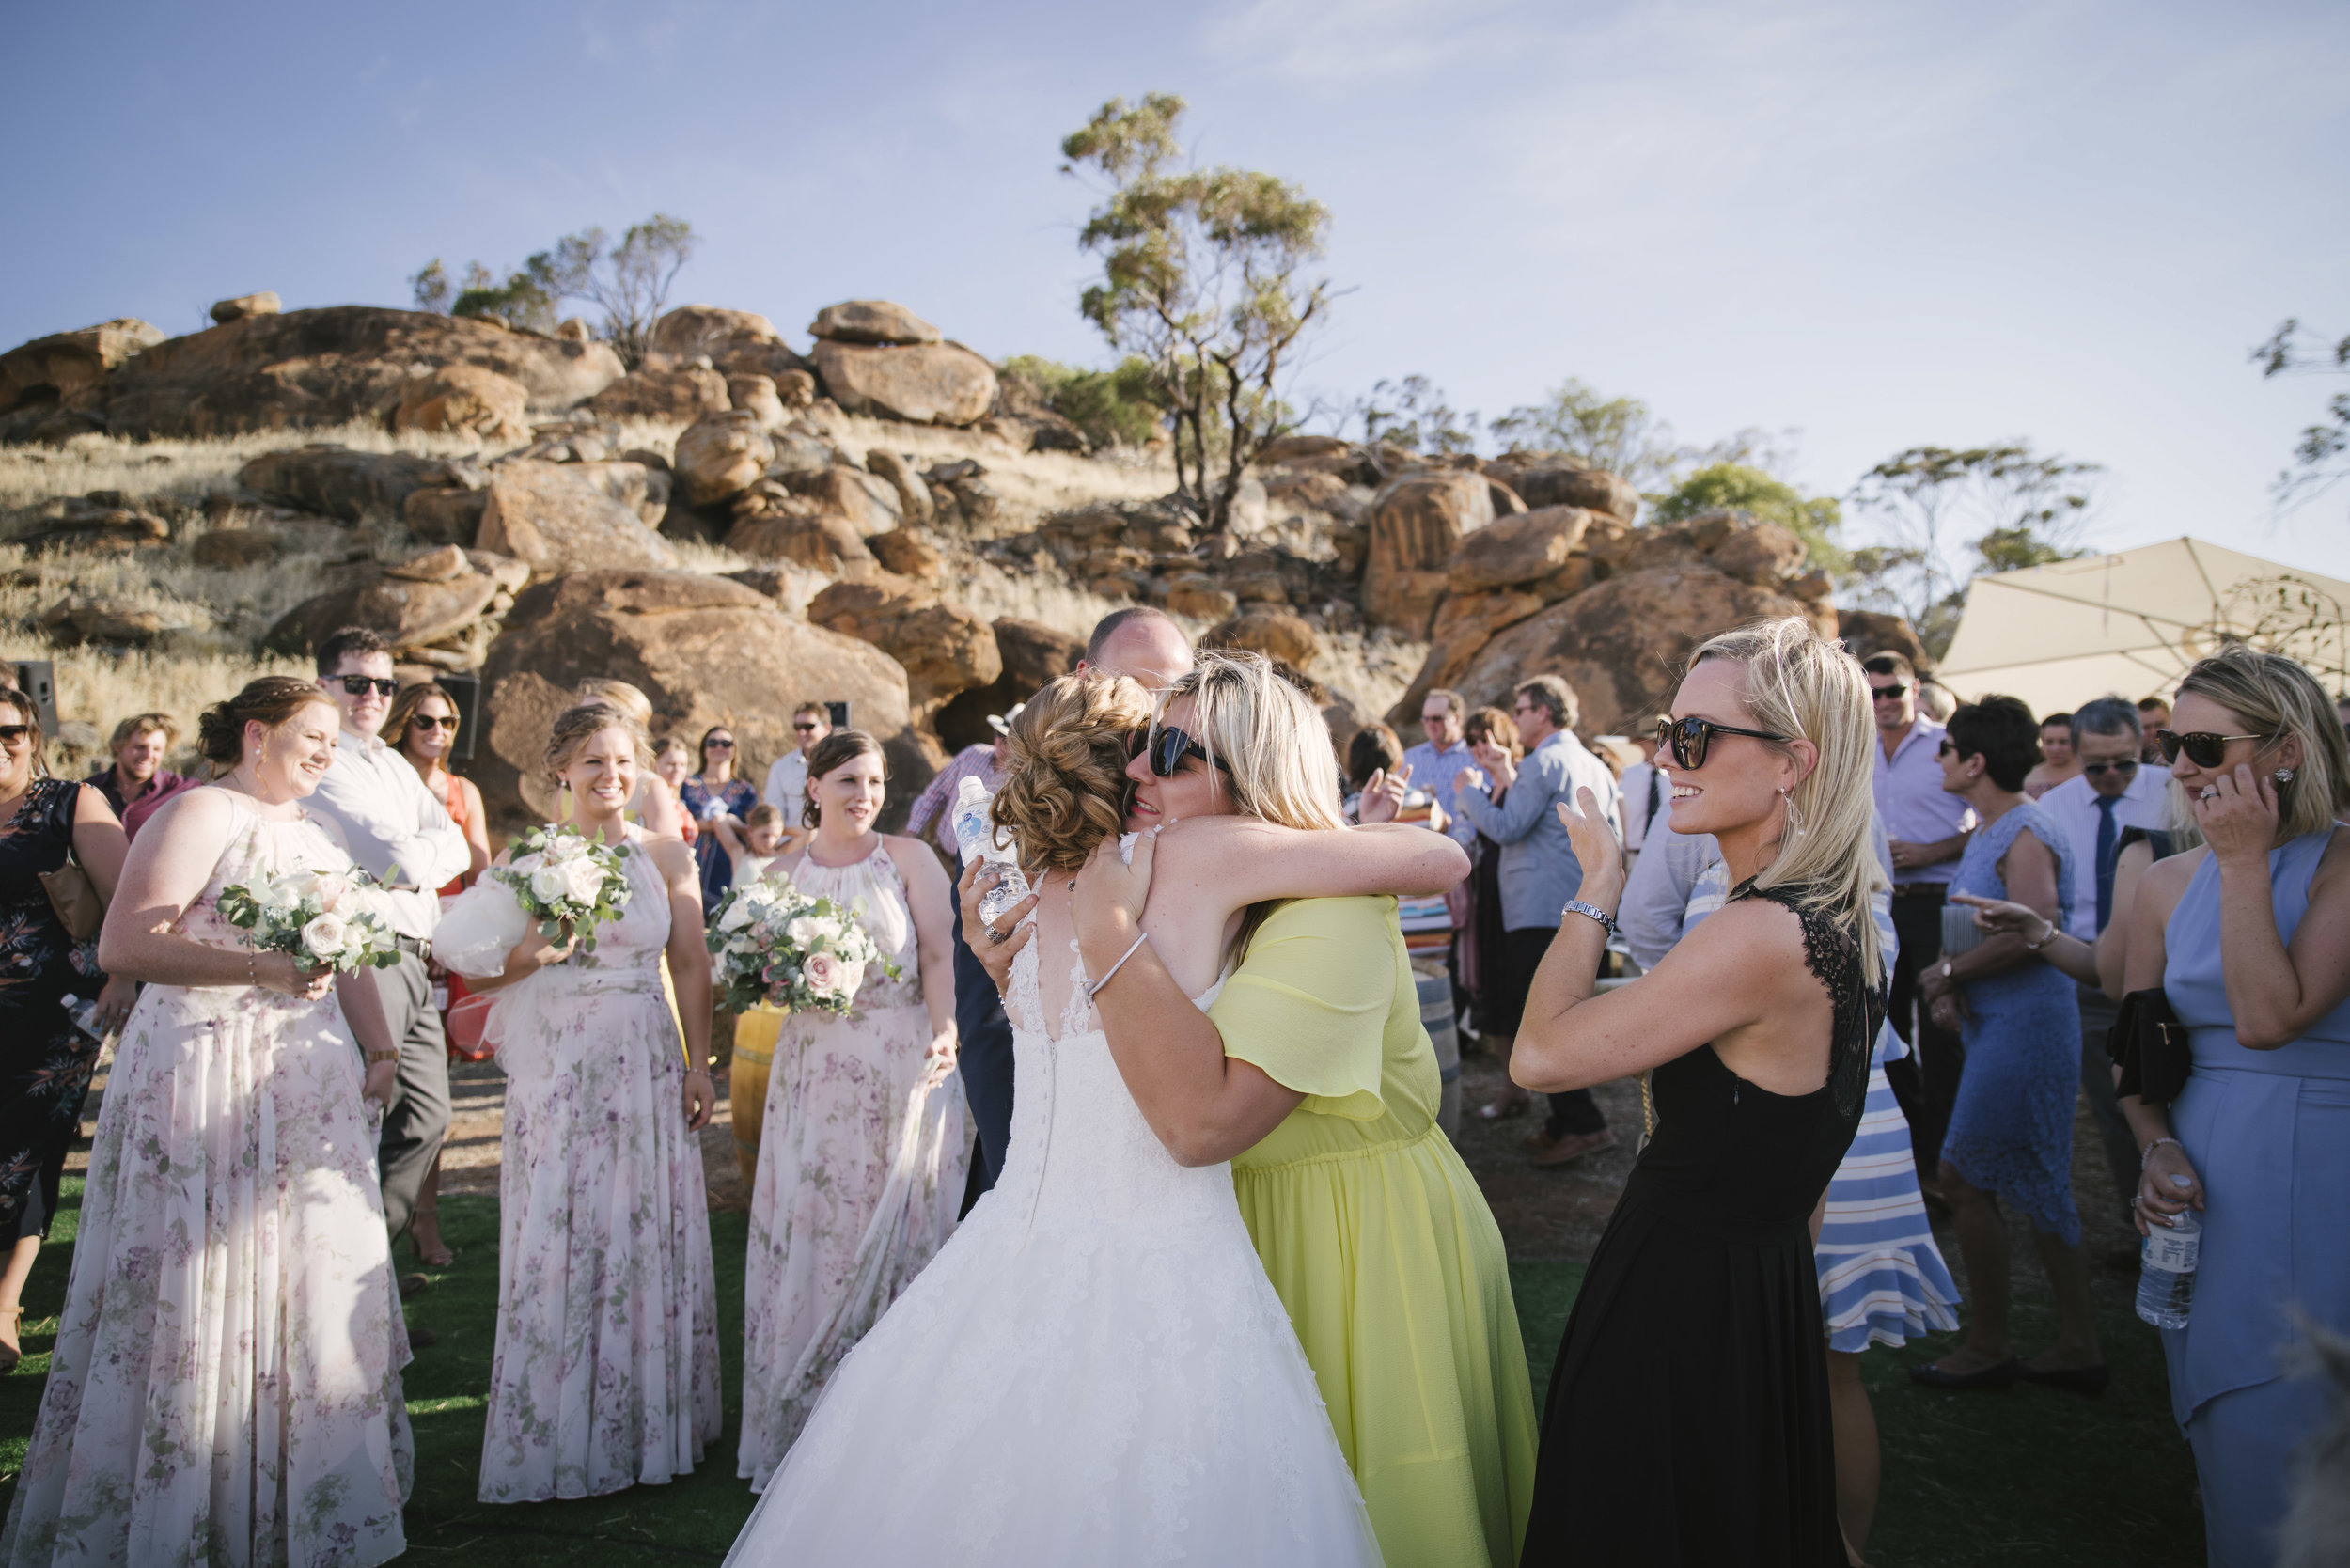 Wheatbelt Merredin Rustic Rural Farm Wedding (31).jpg